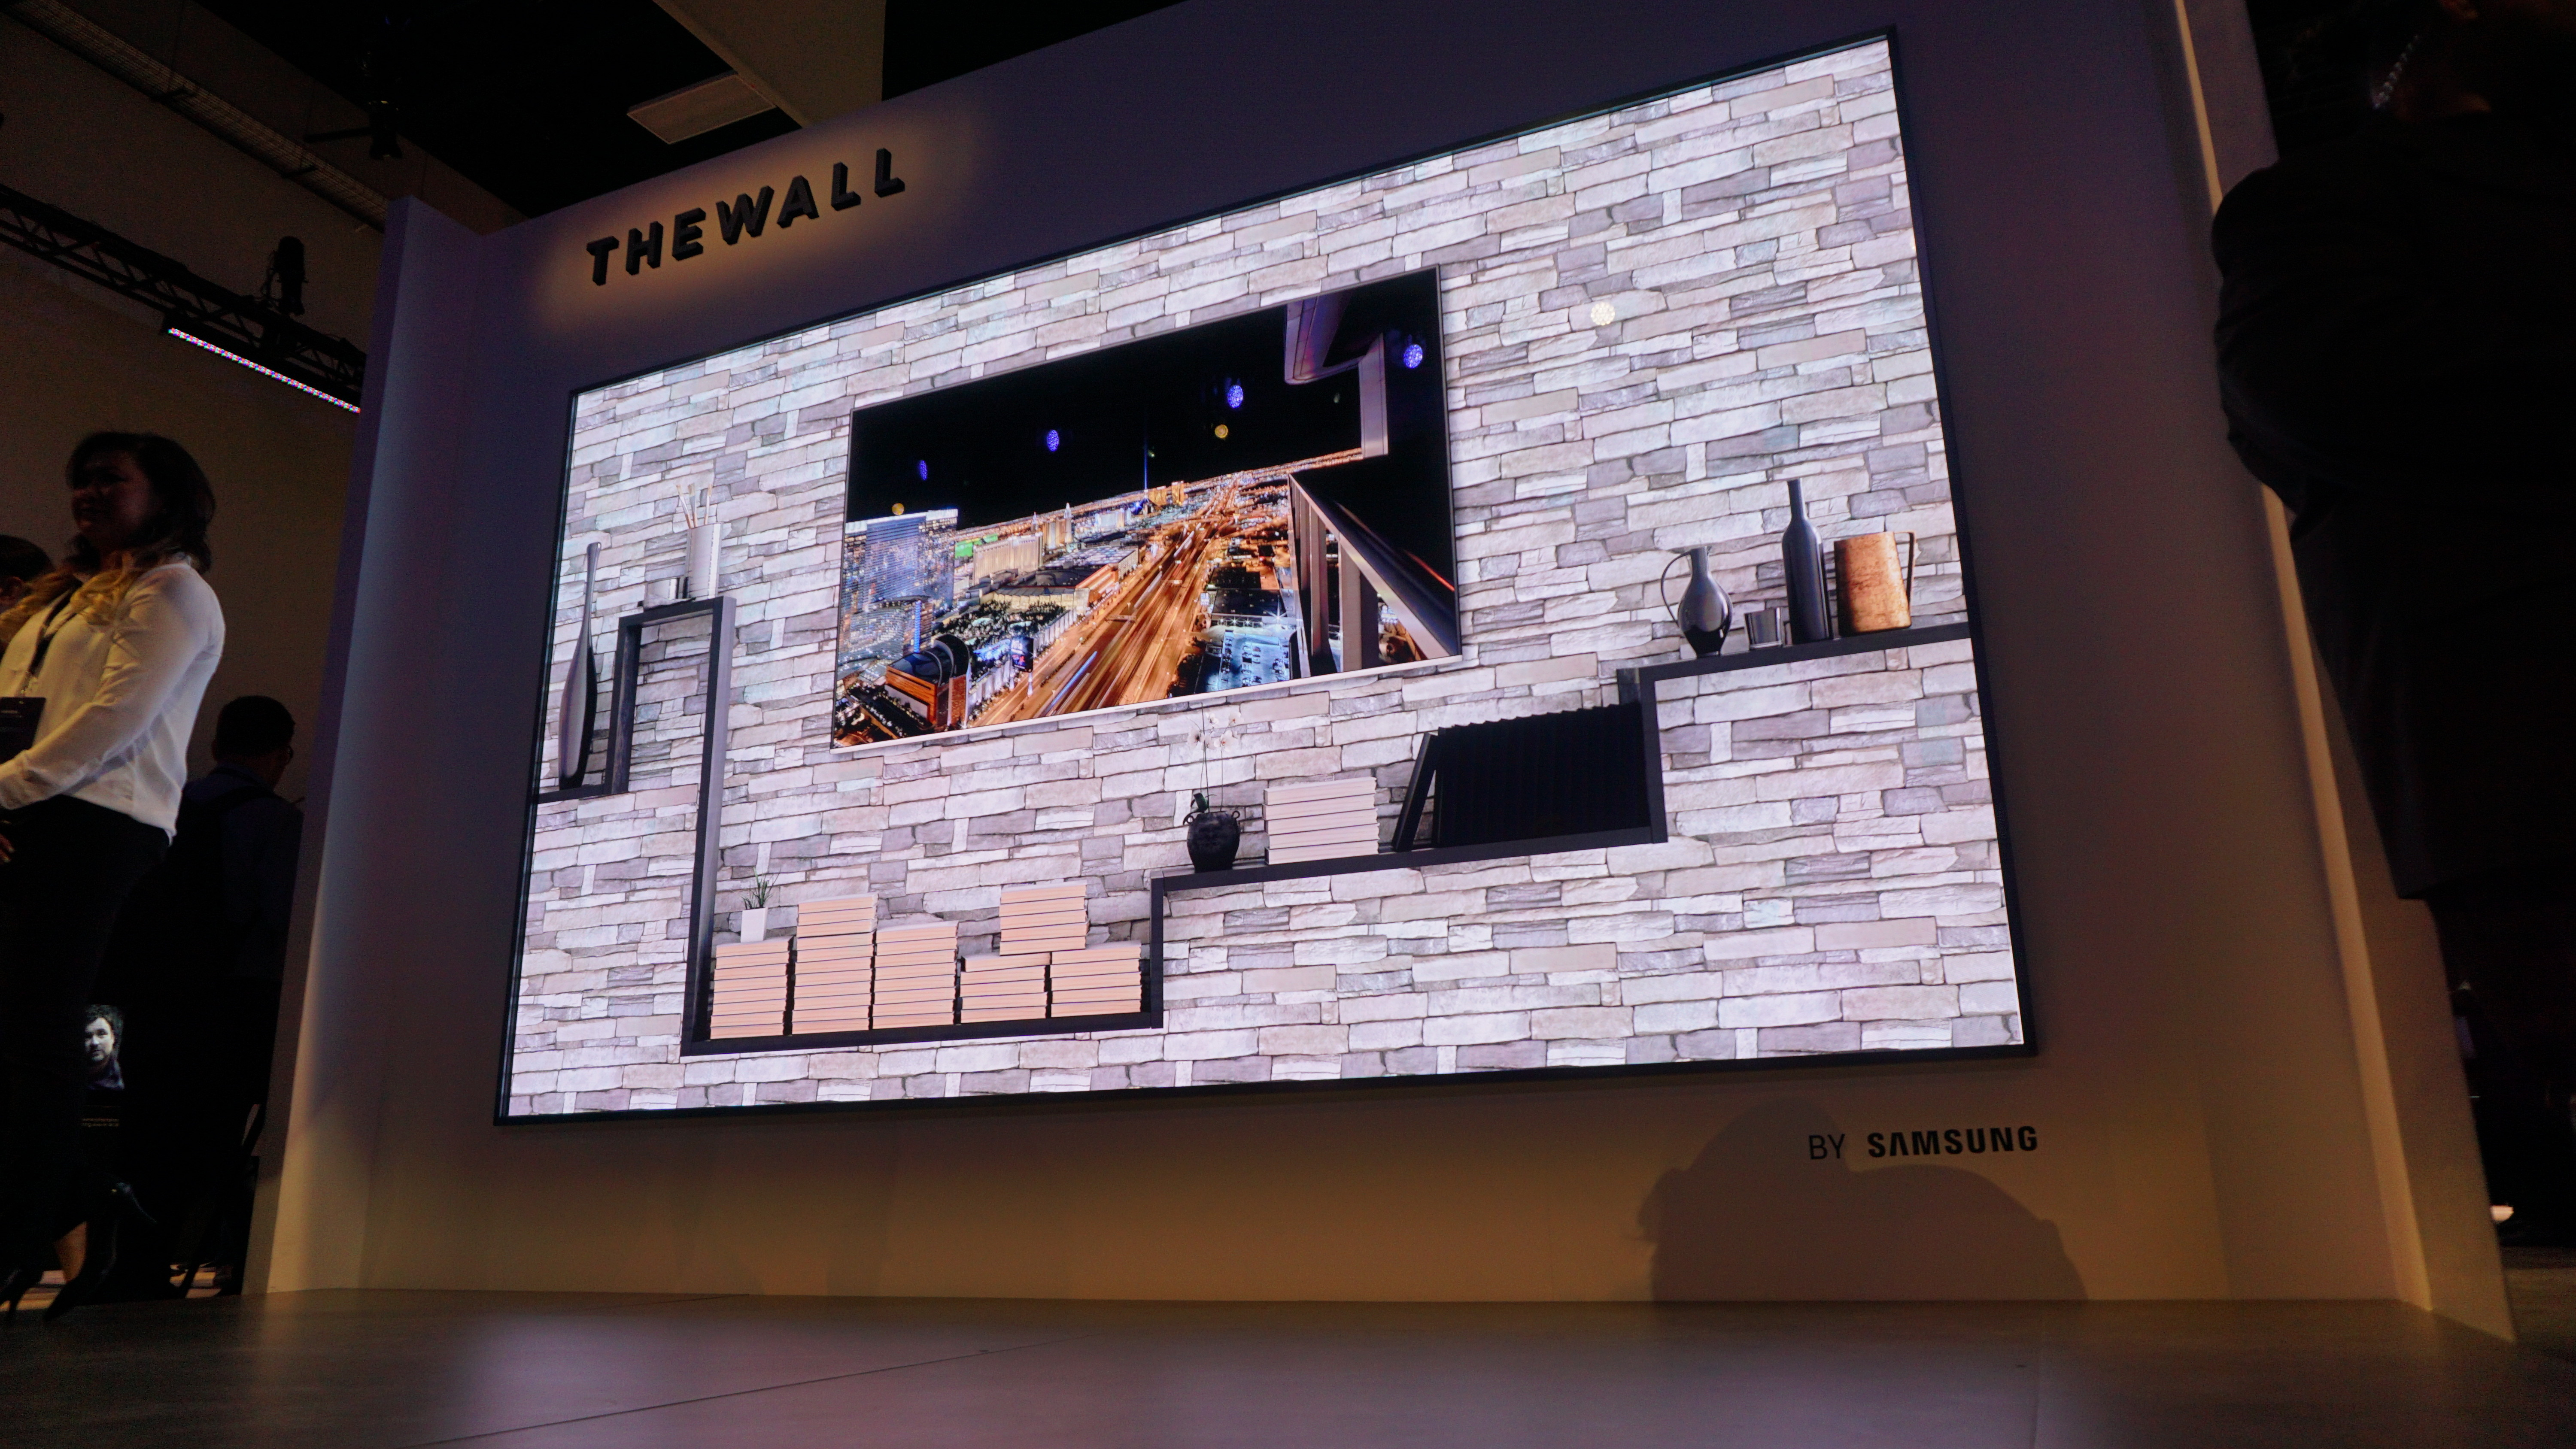 Samsung's 'The Wall' is now available in Europe | TechRadar